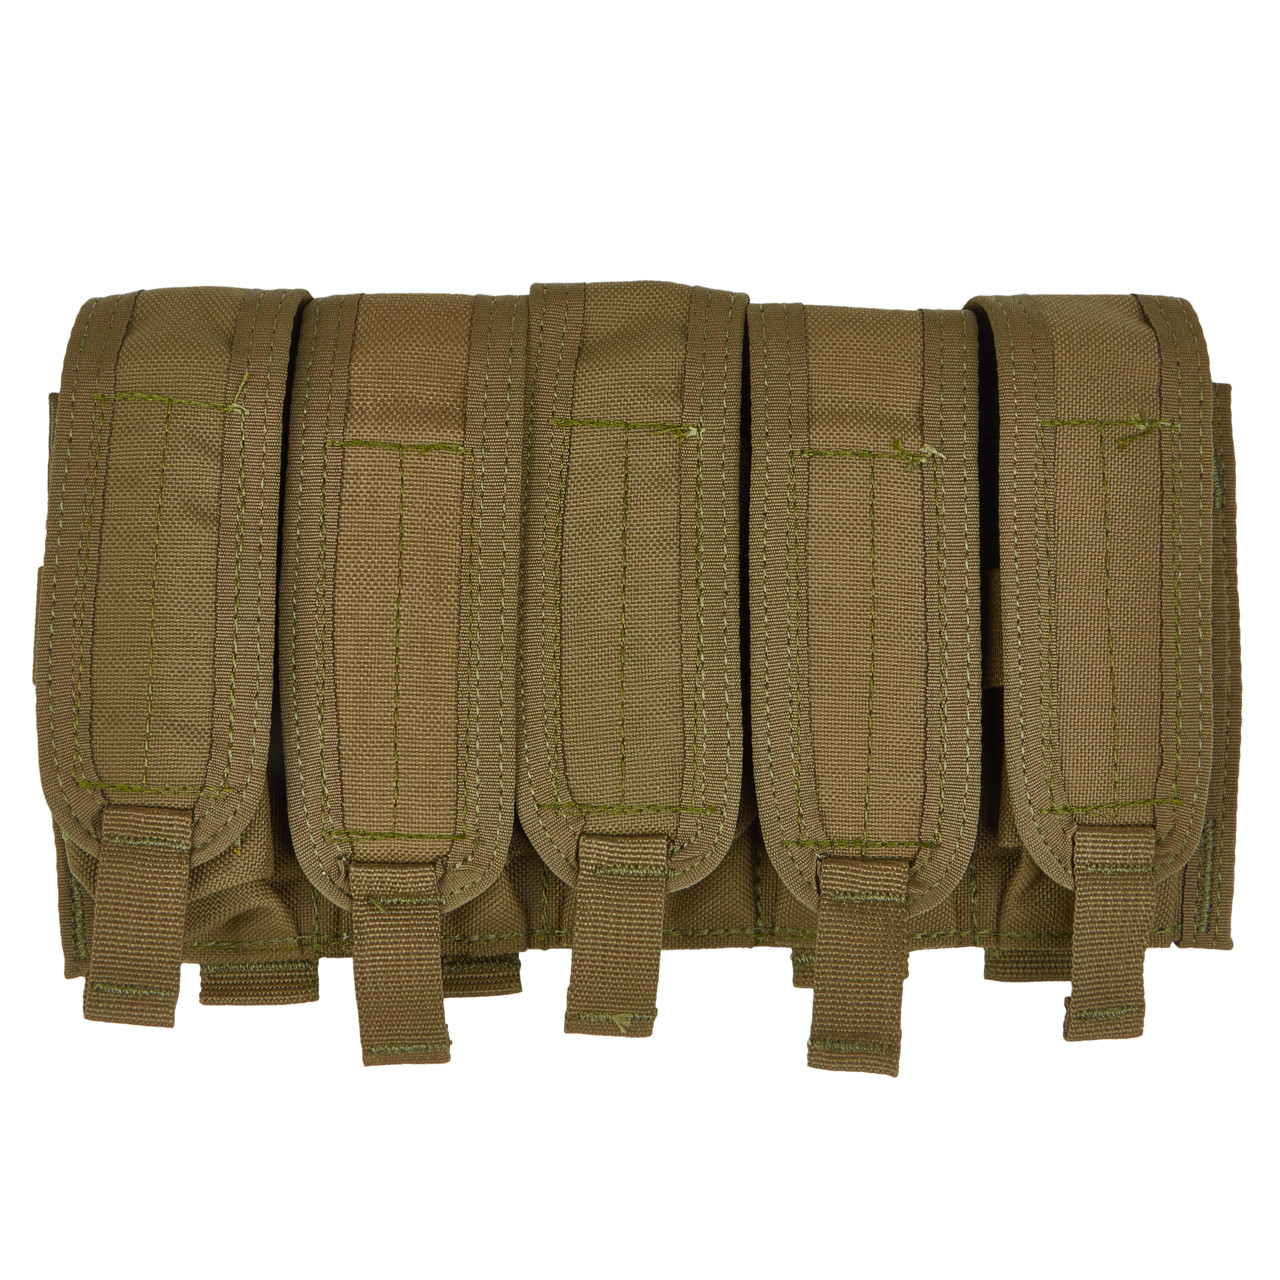 50456 UNIVERSAL MOLLE POUCH, 5 POCKET